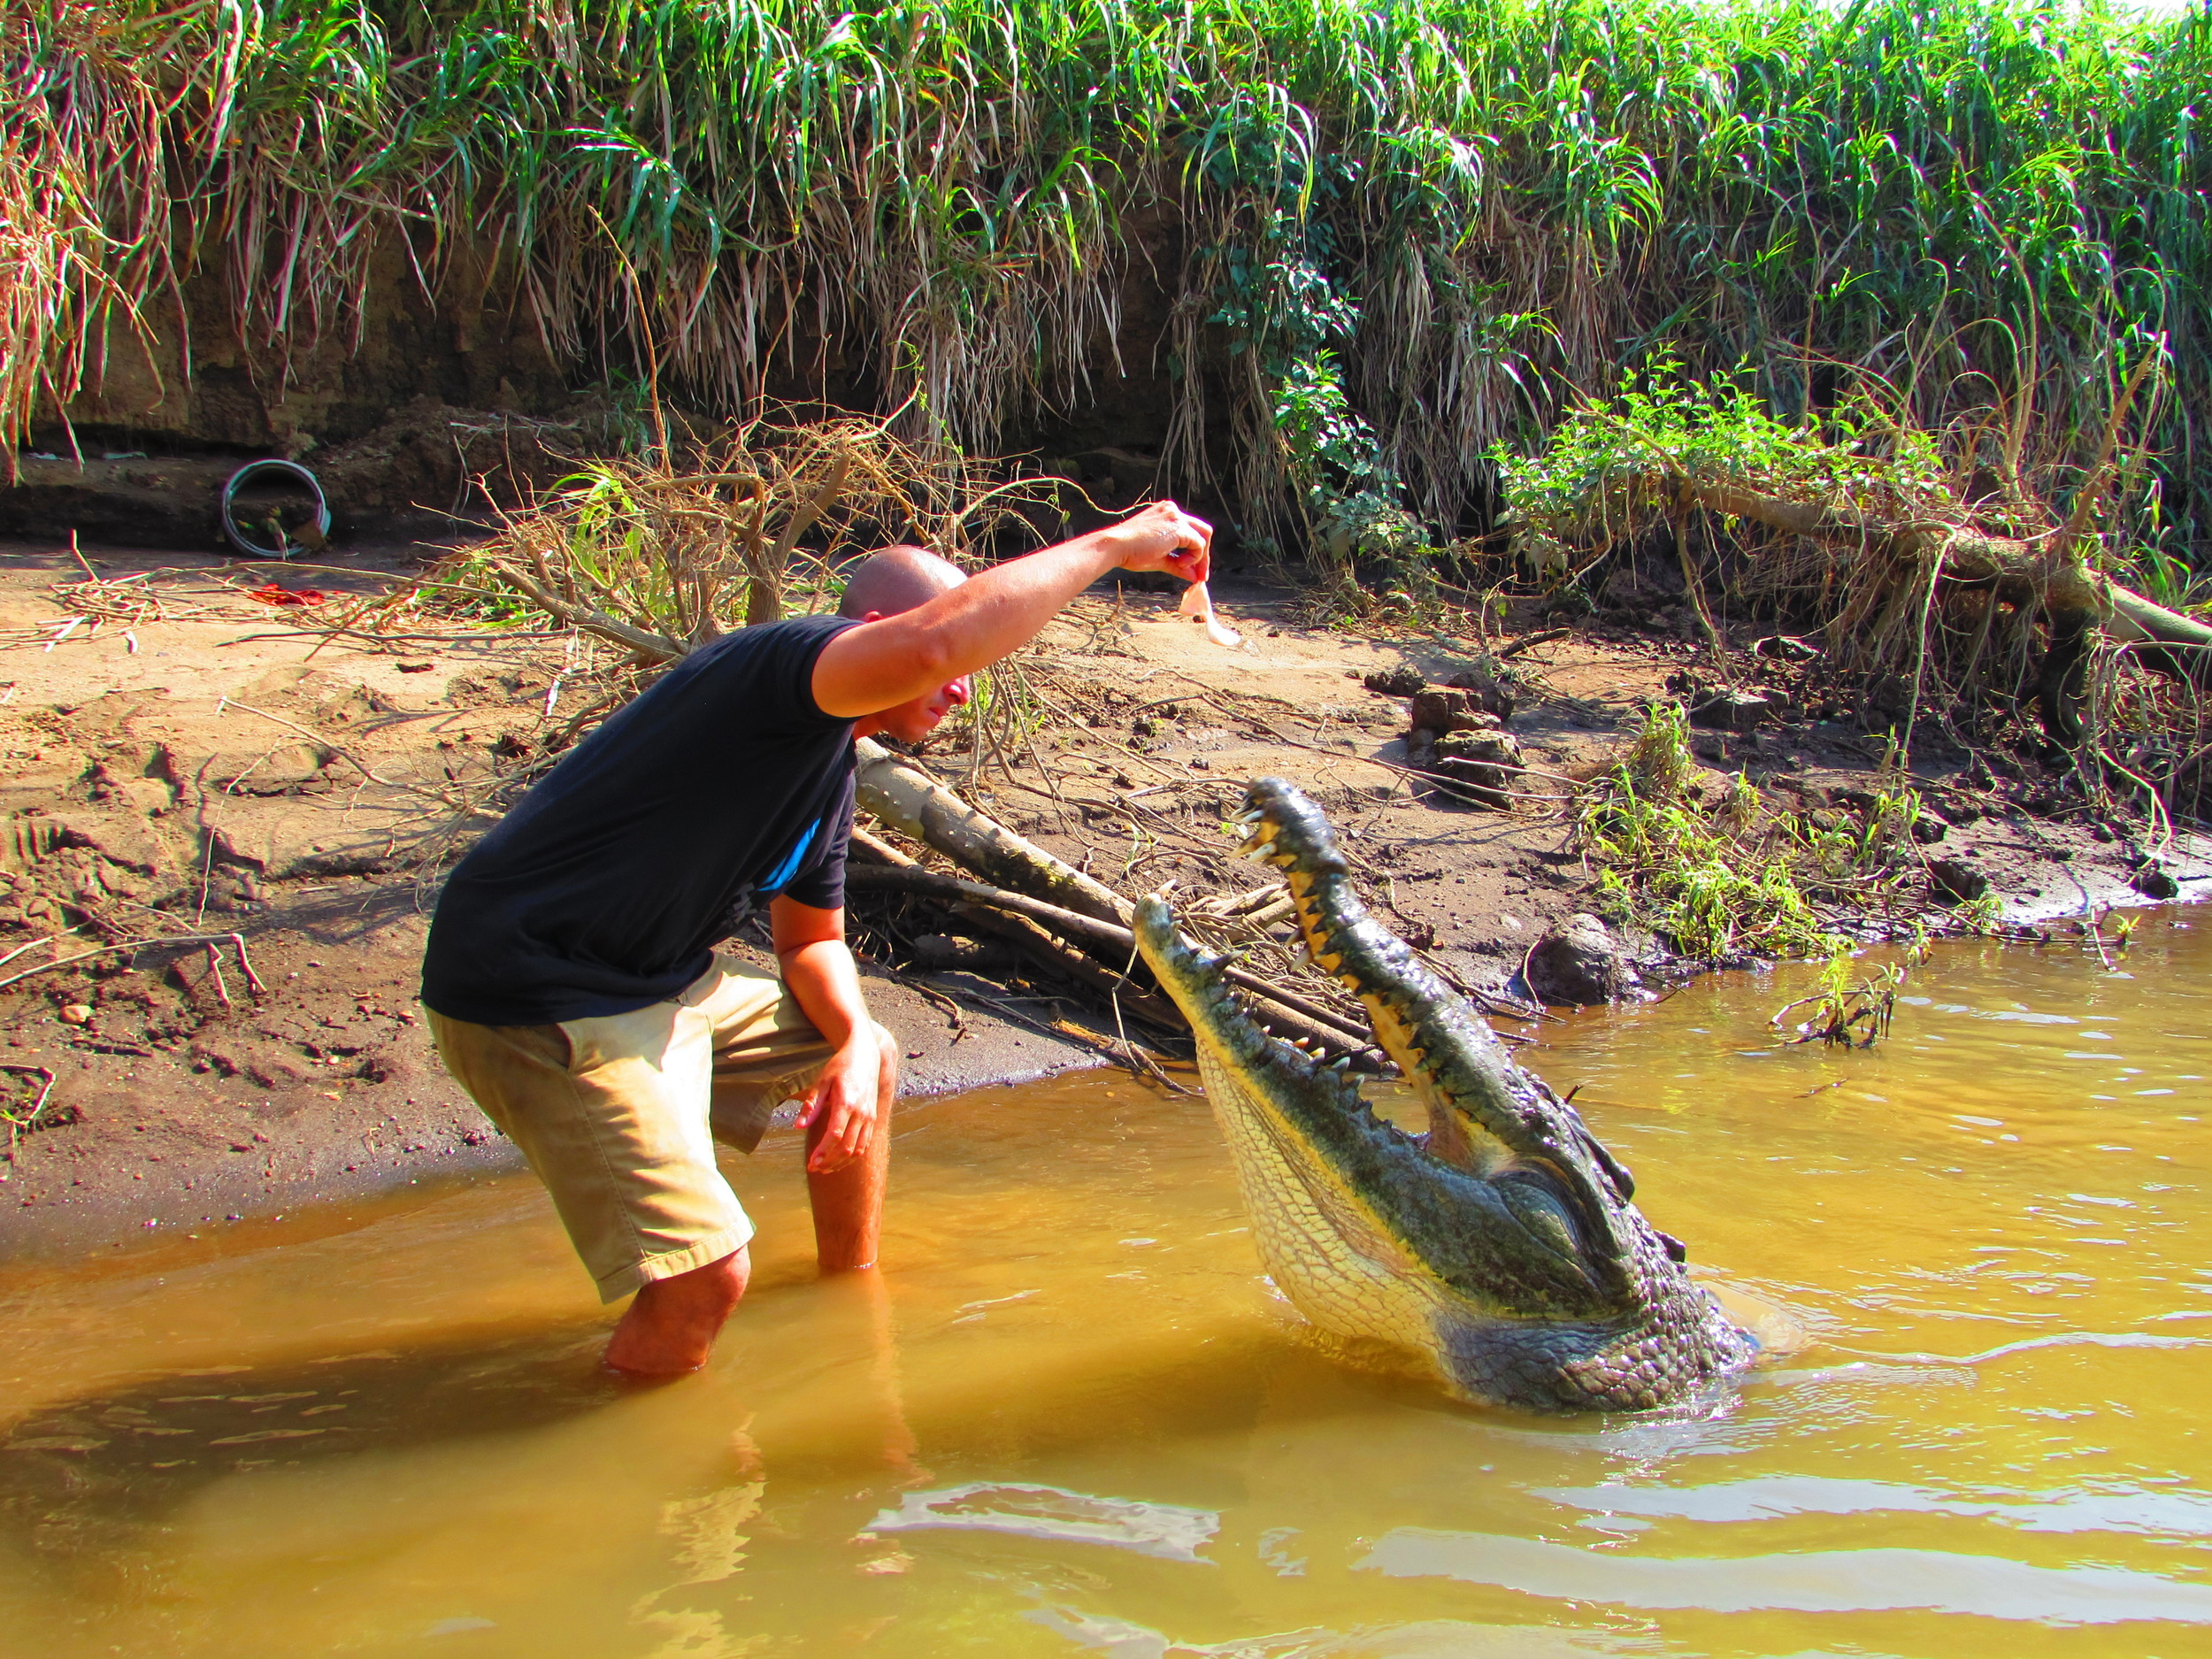 There he goes again with feeding those crocs!